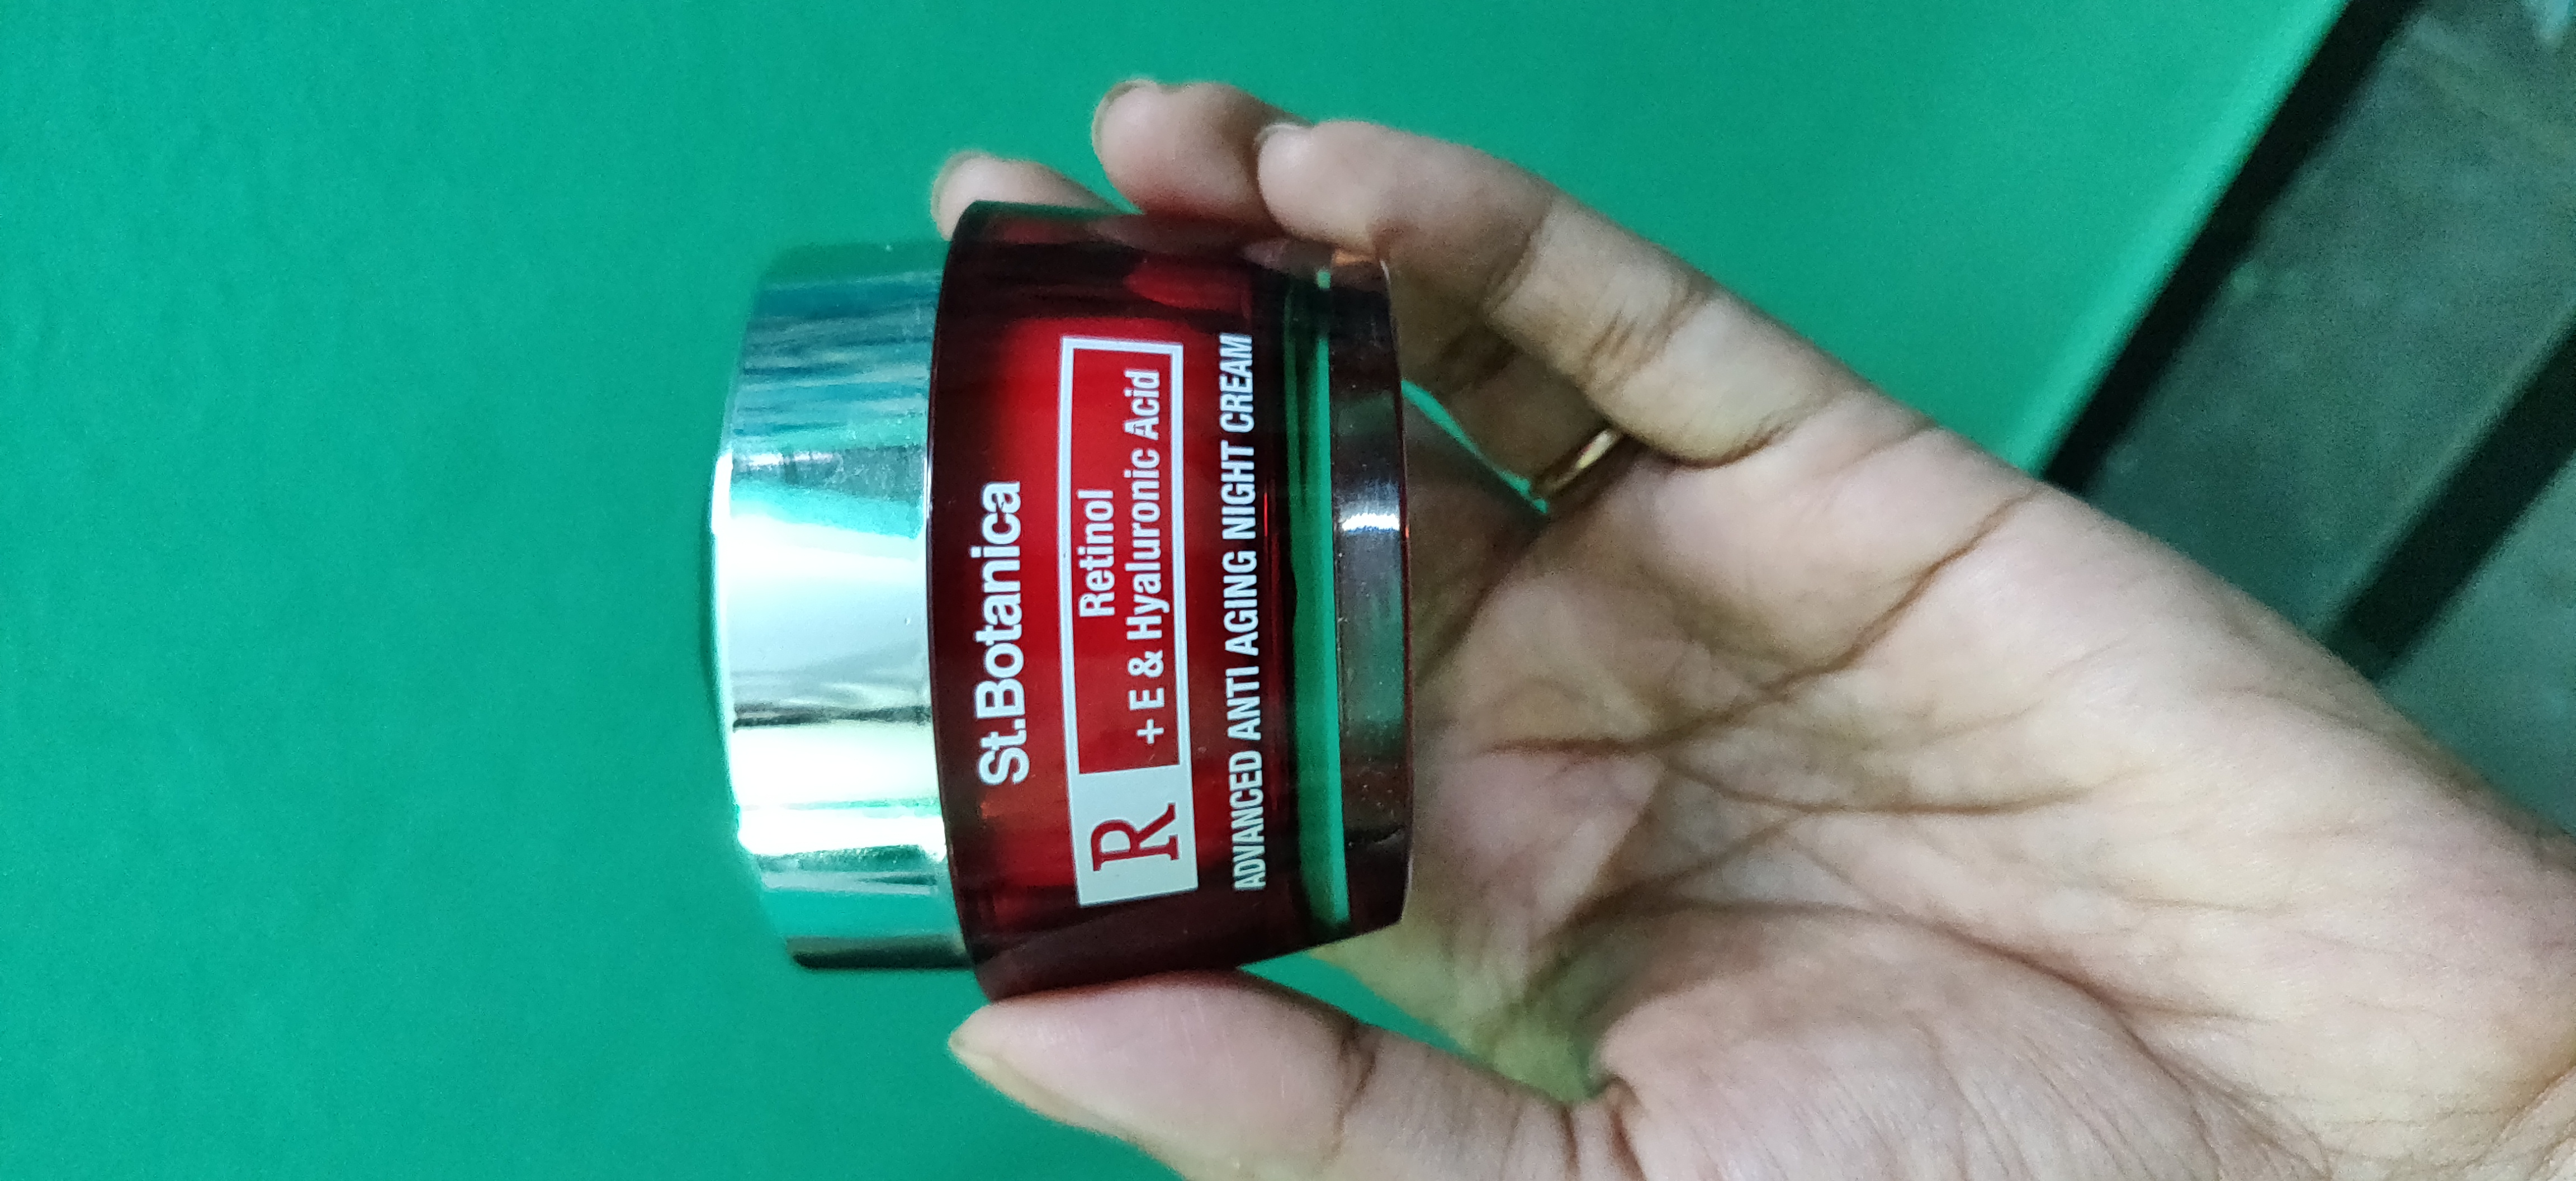 St.Botanica Retinol Advanced Anti Aging Night Cream pic 2-Effective Product-By beautywithtabs